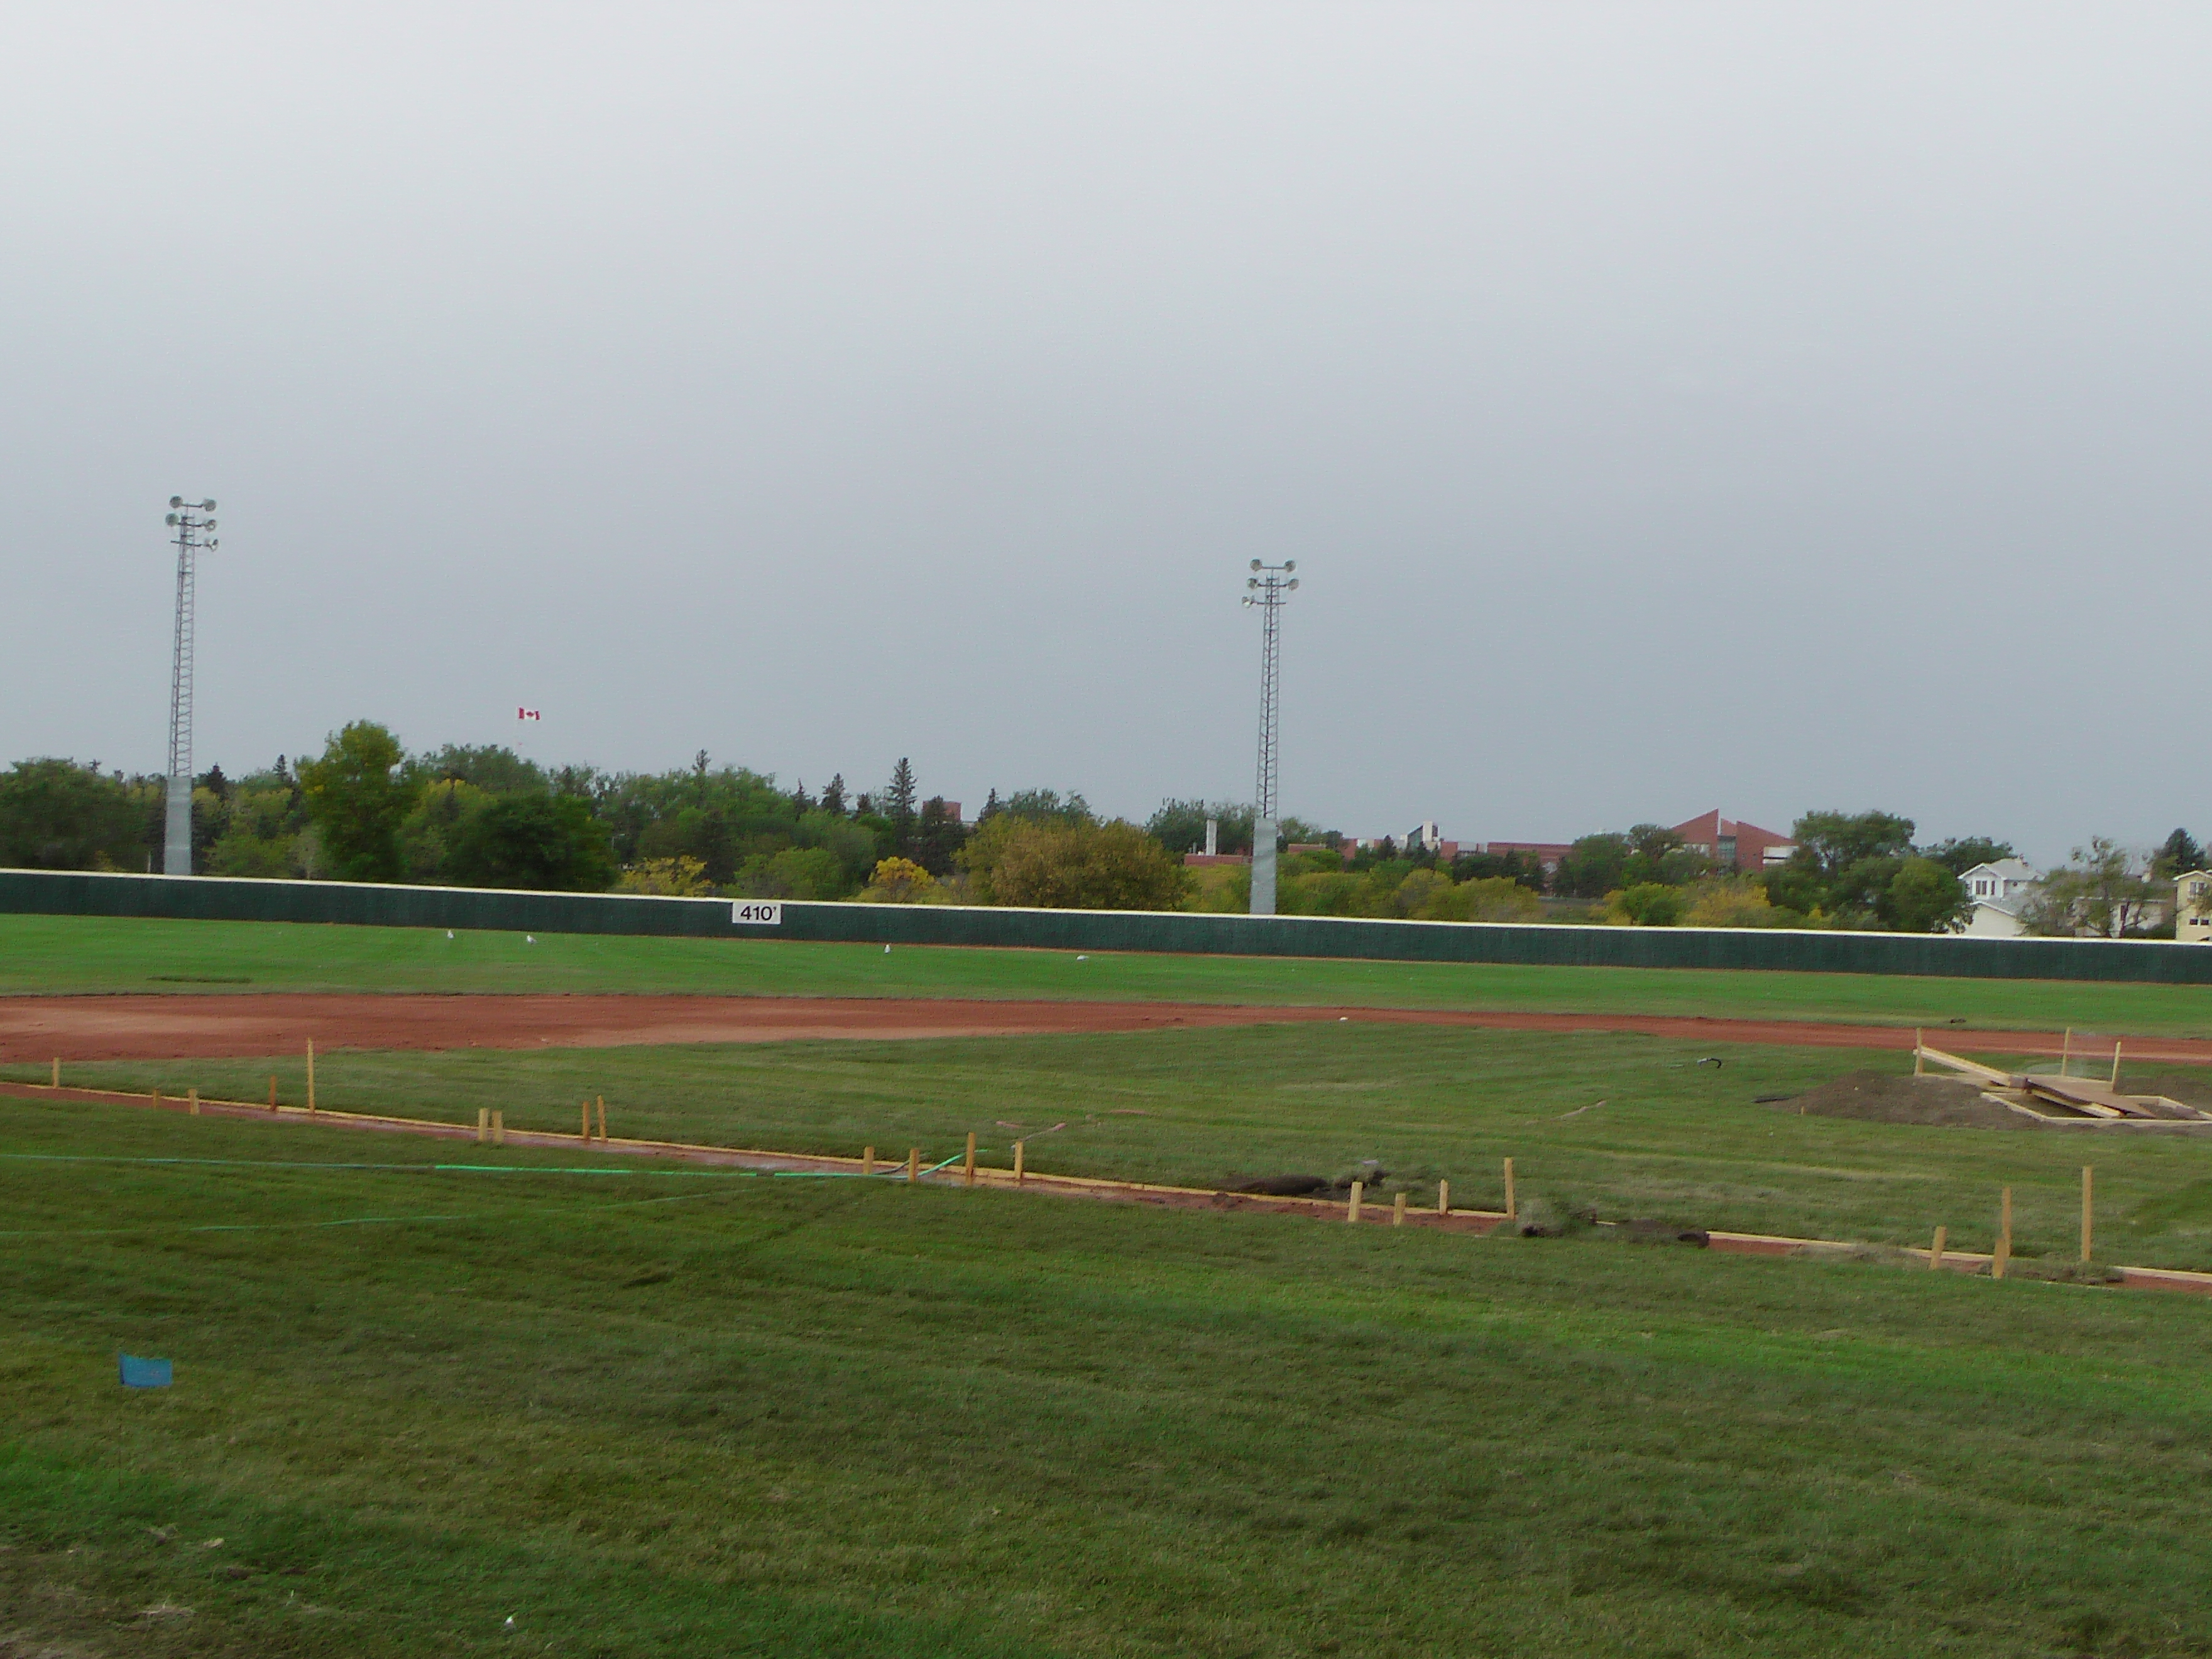 Sept 7 & 8 2018, Optimist Park Field Renovations, sod down being watered - Image 19